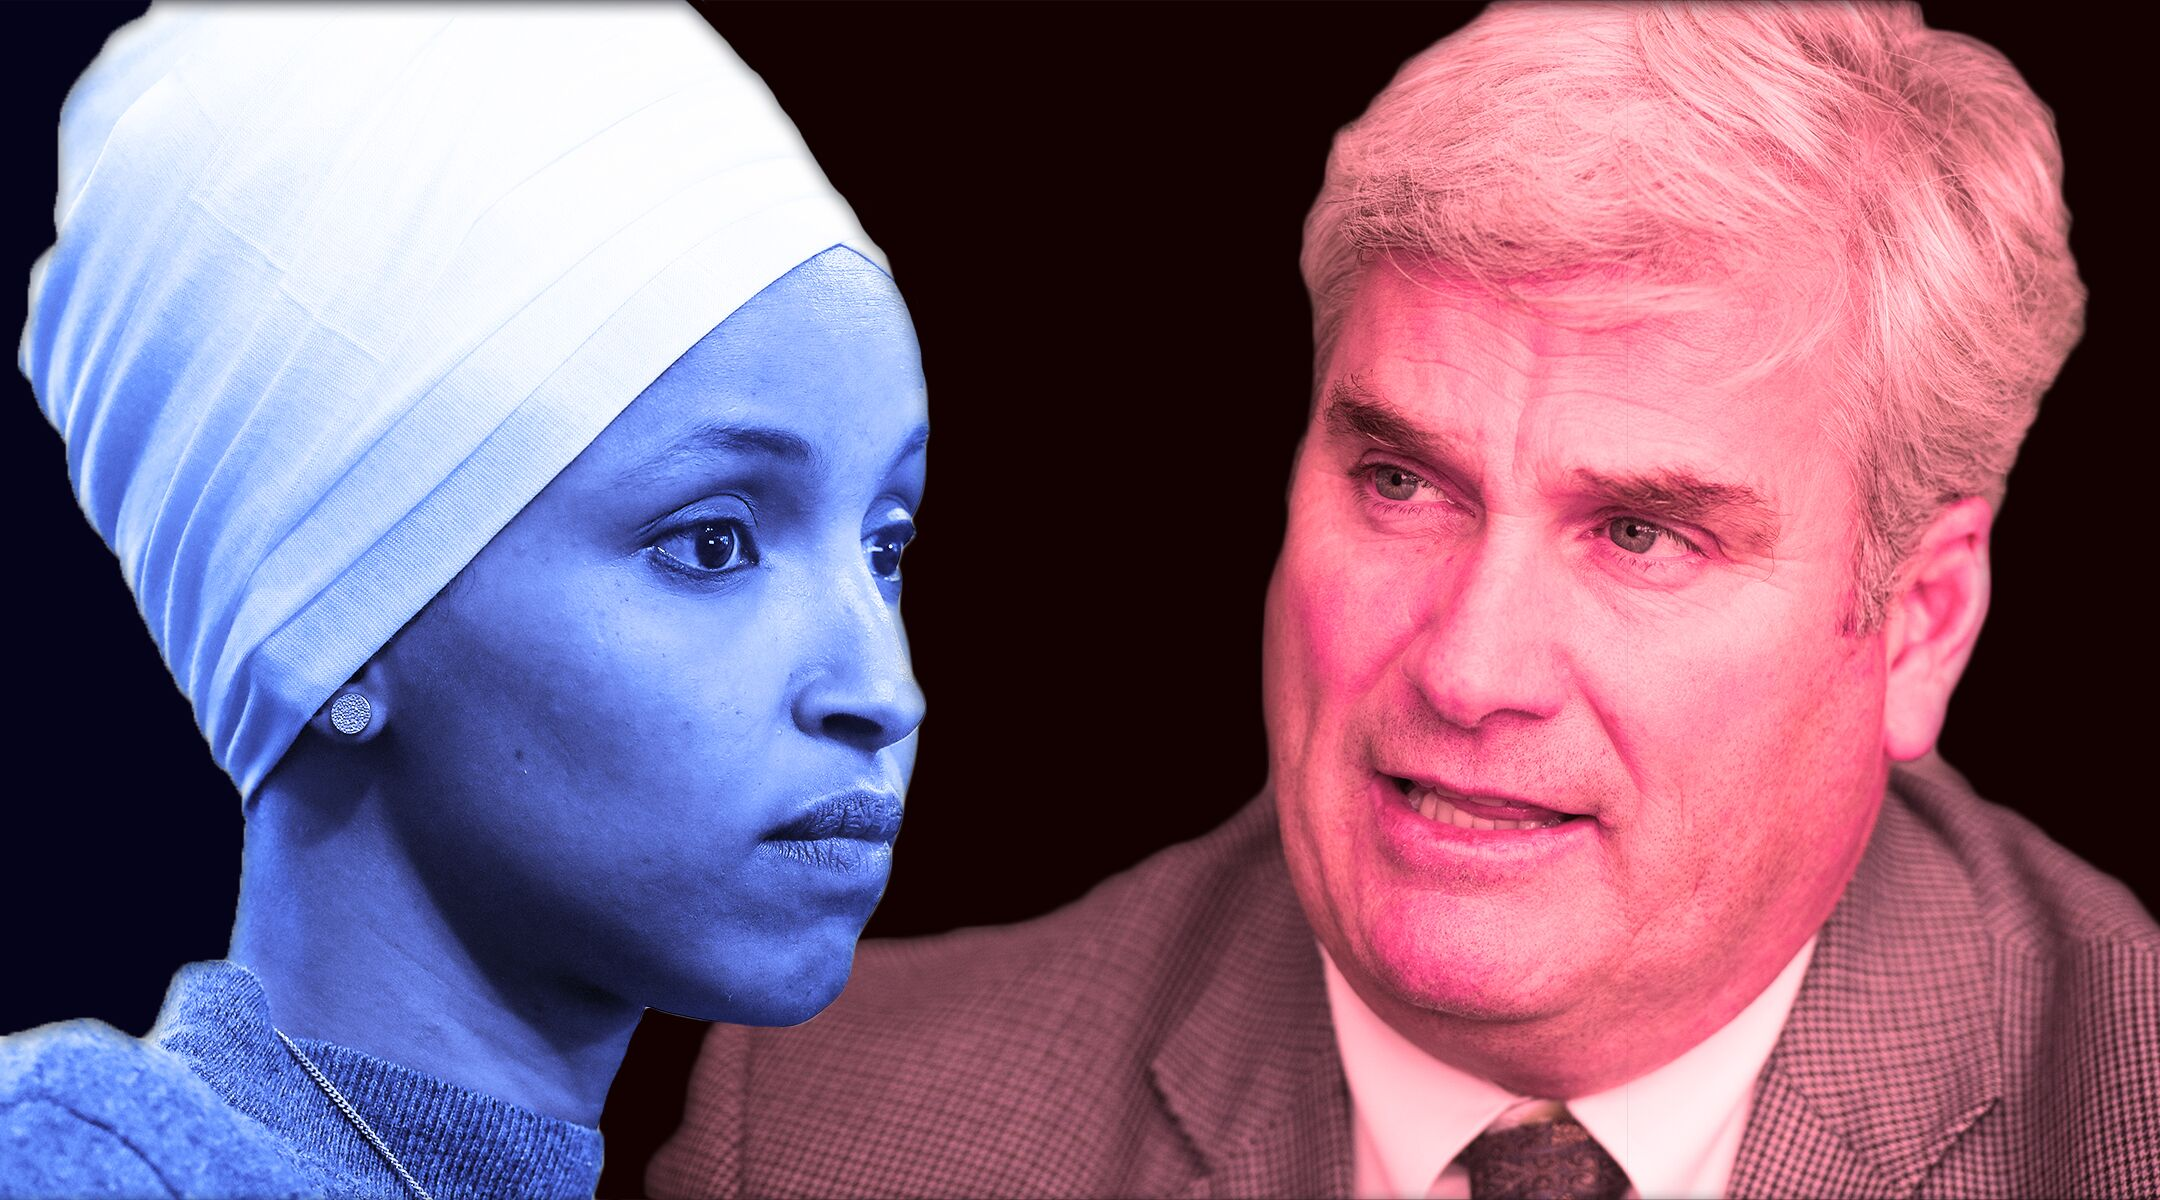 The divergent responses to anti-Semitism coming from Reps. Ilhan Omar, a Democrat, and Tom Emmer, a Republican, tell us a lot about America, writes law professor David Schraub.